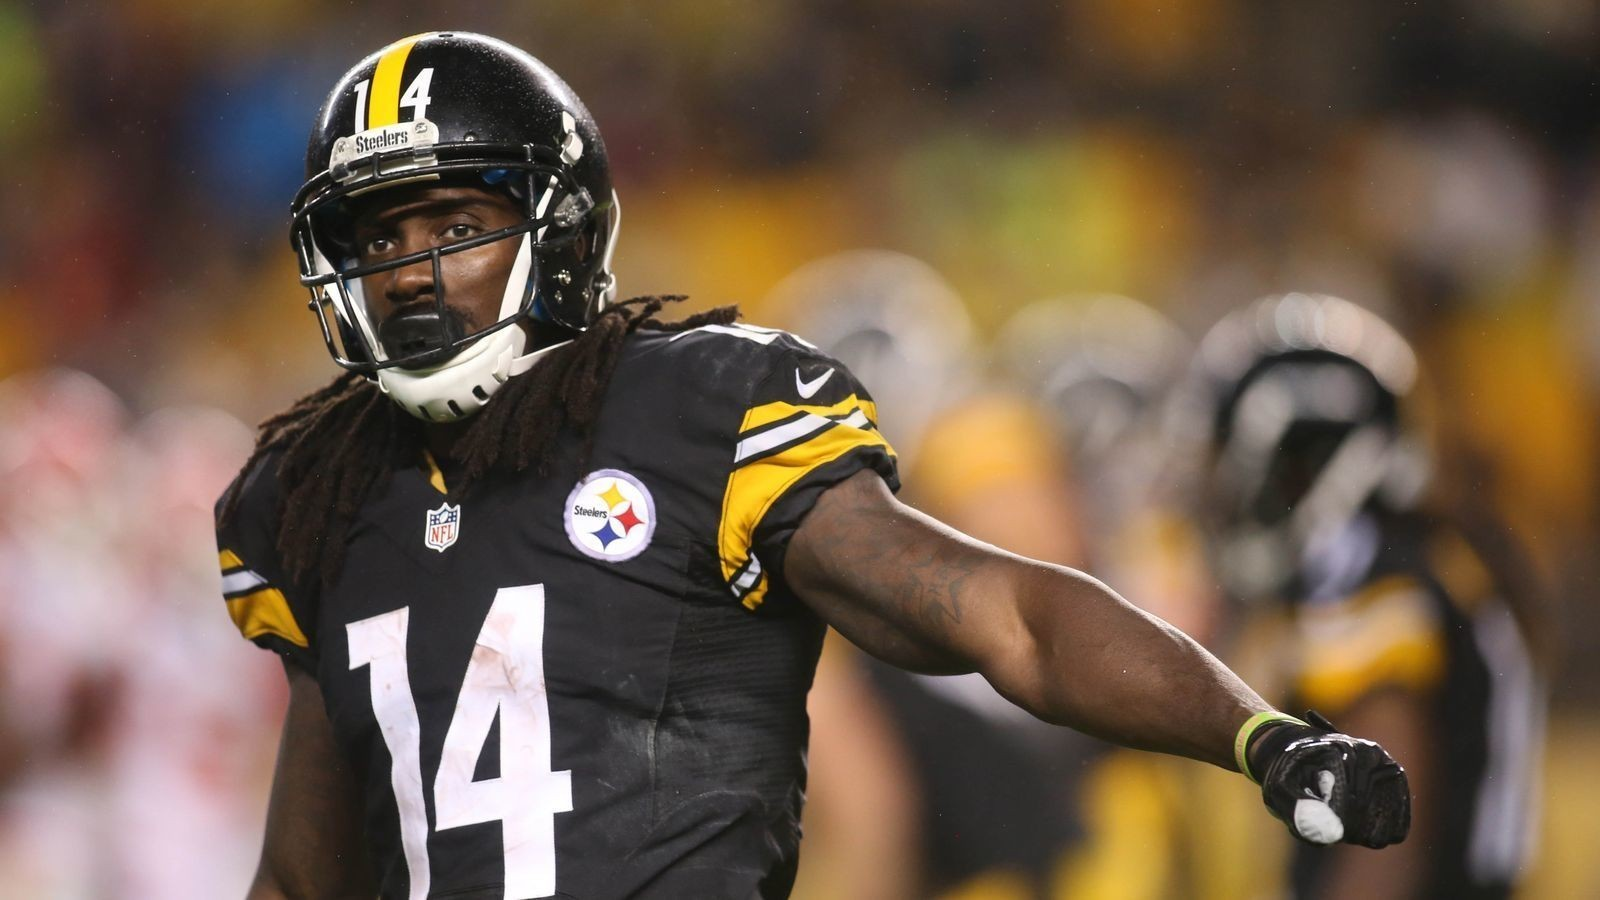 Steelers Injury Report: Should fans be concerned about Pittsburgh's wide receiver depth in Week 6?